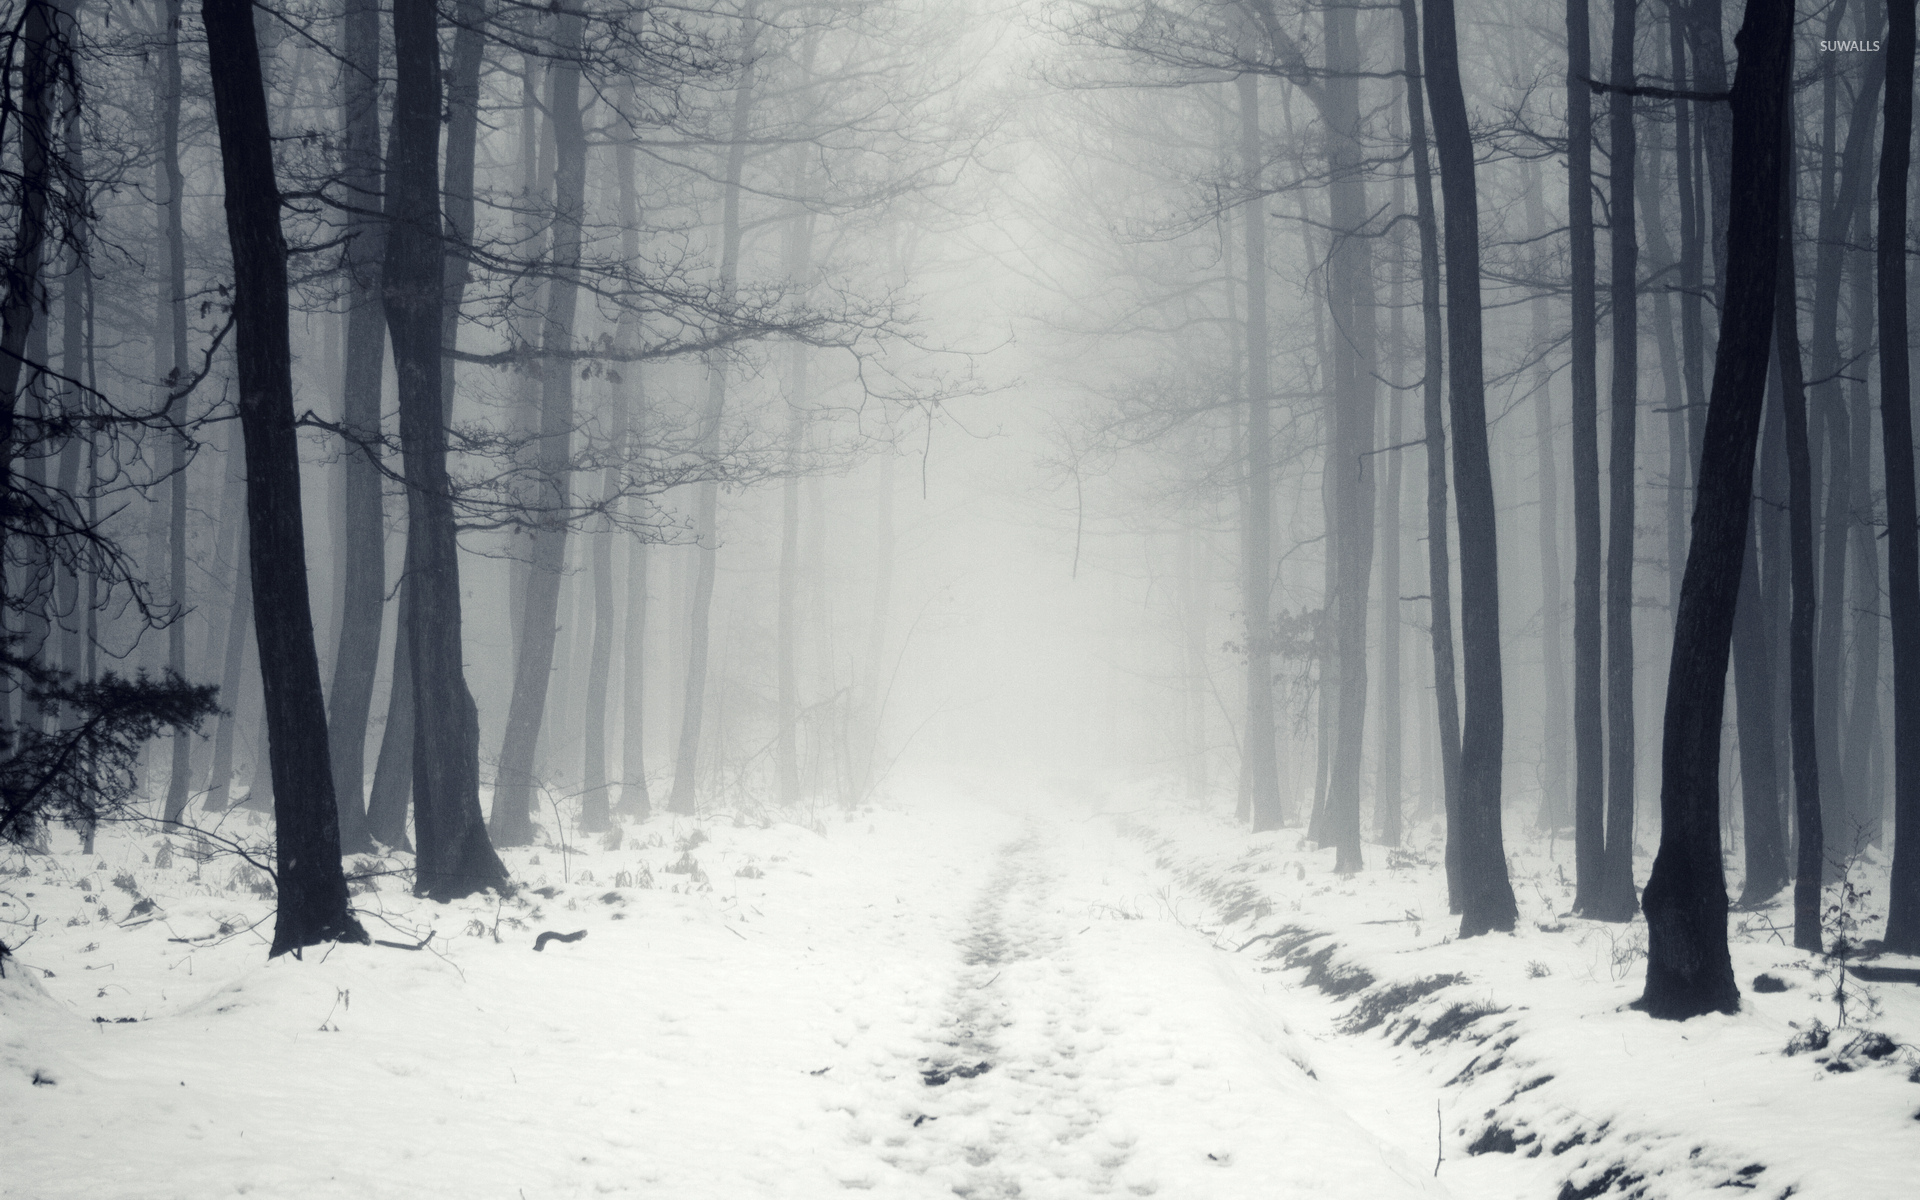 Snowy path in the foggy forest wallpaper Nature wallpapers